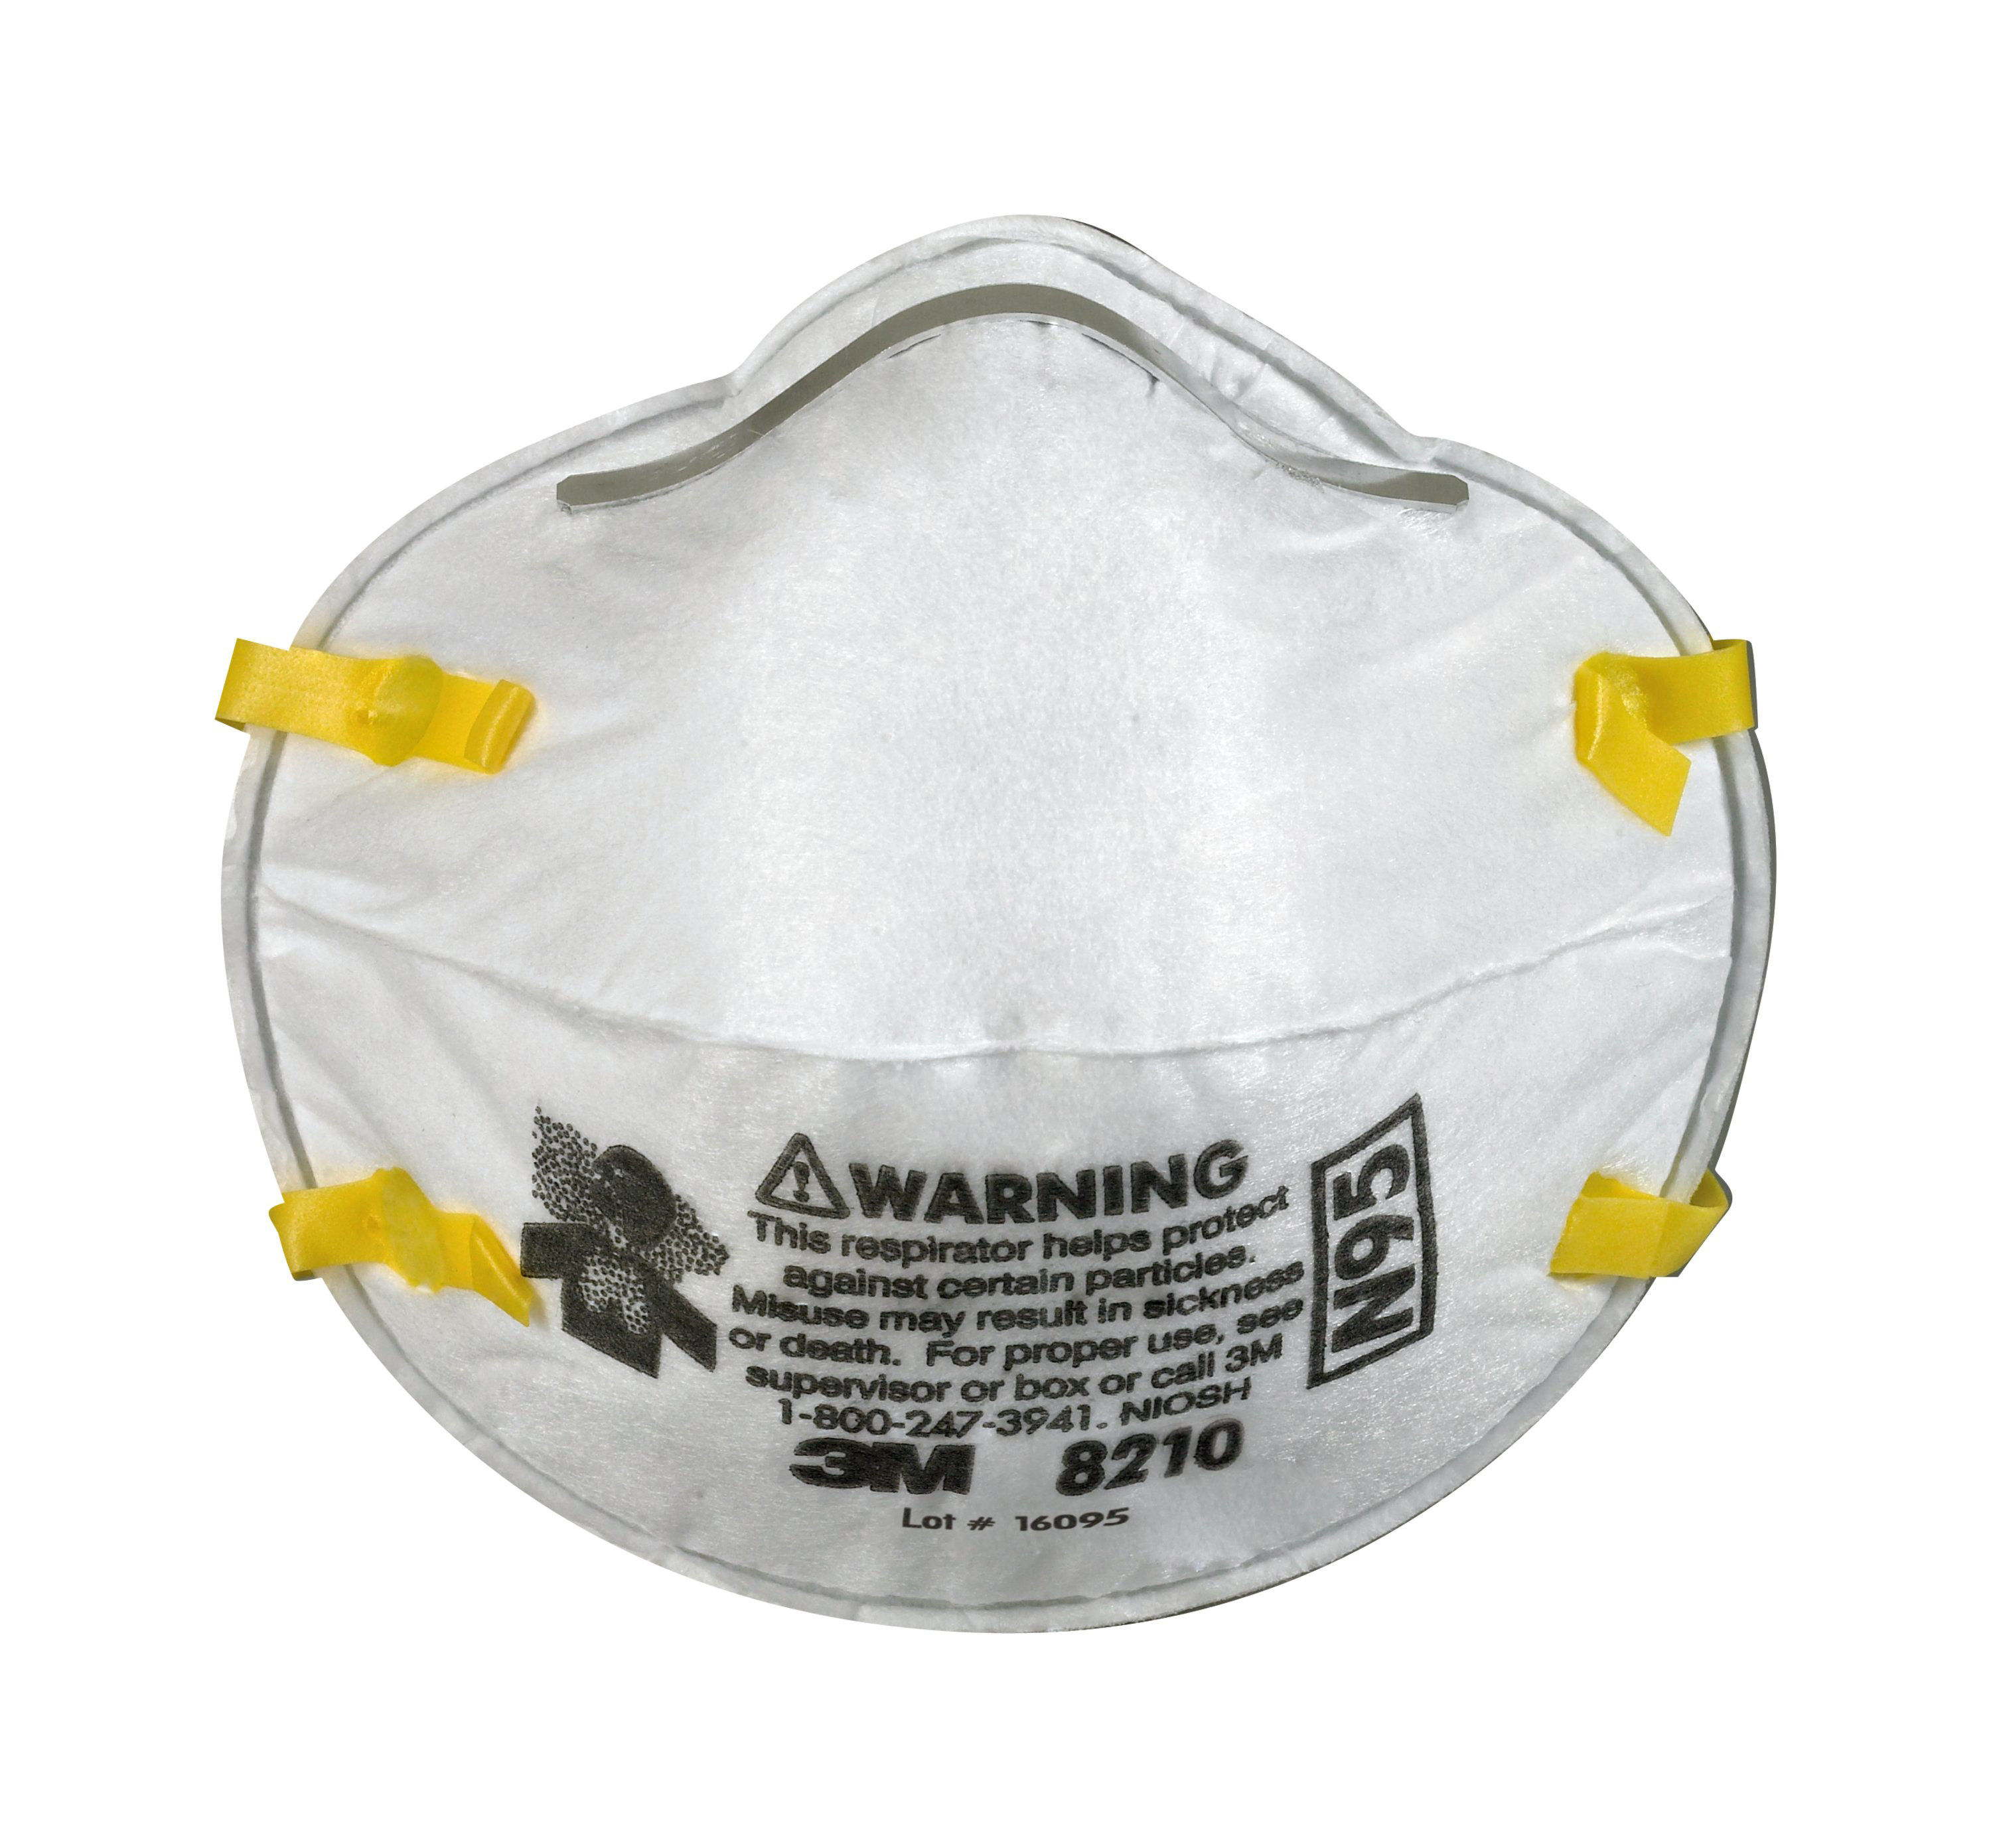 3m Safety - N95 20 Respirator Acure 8210 X